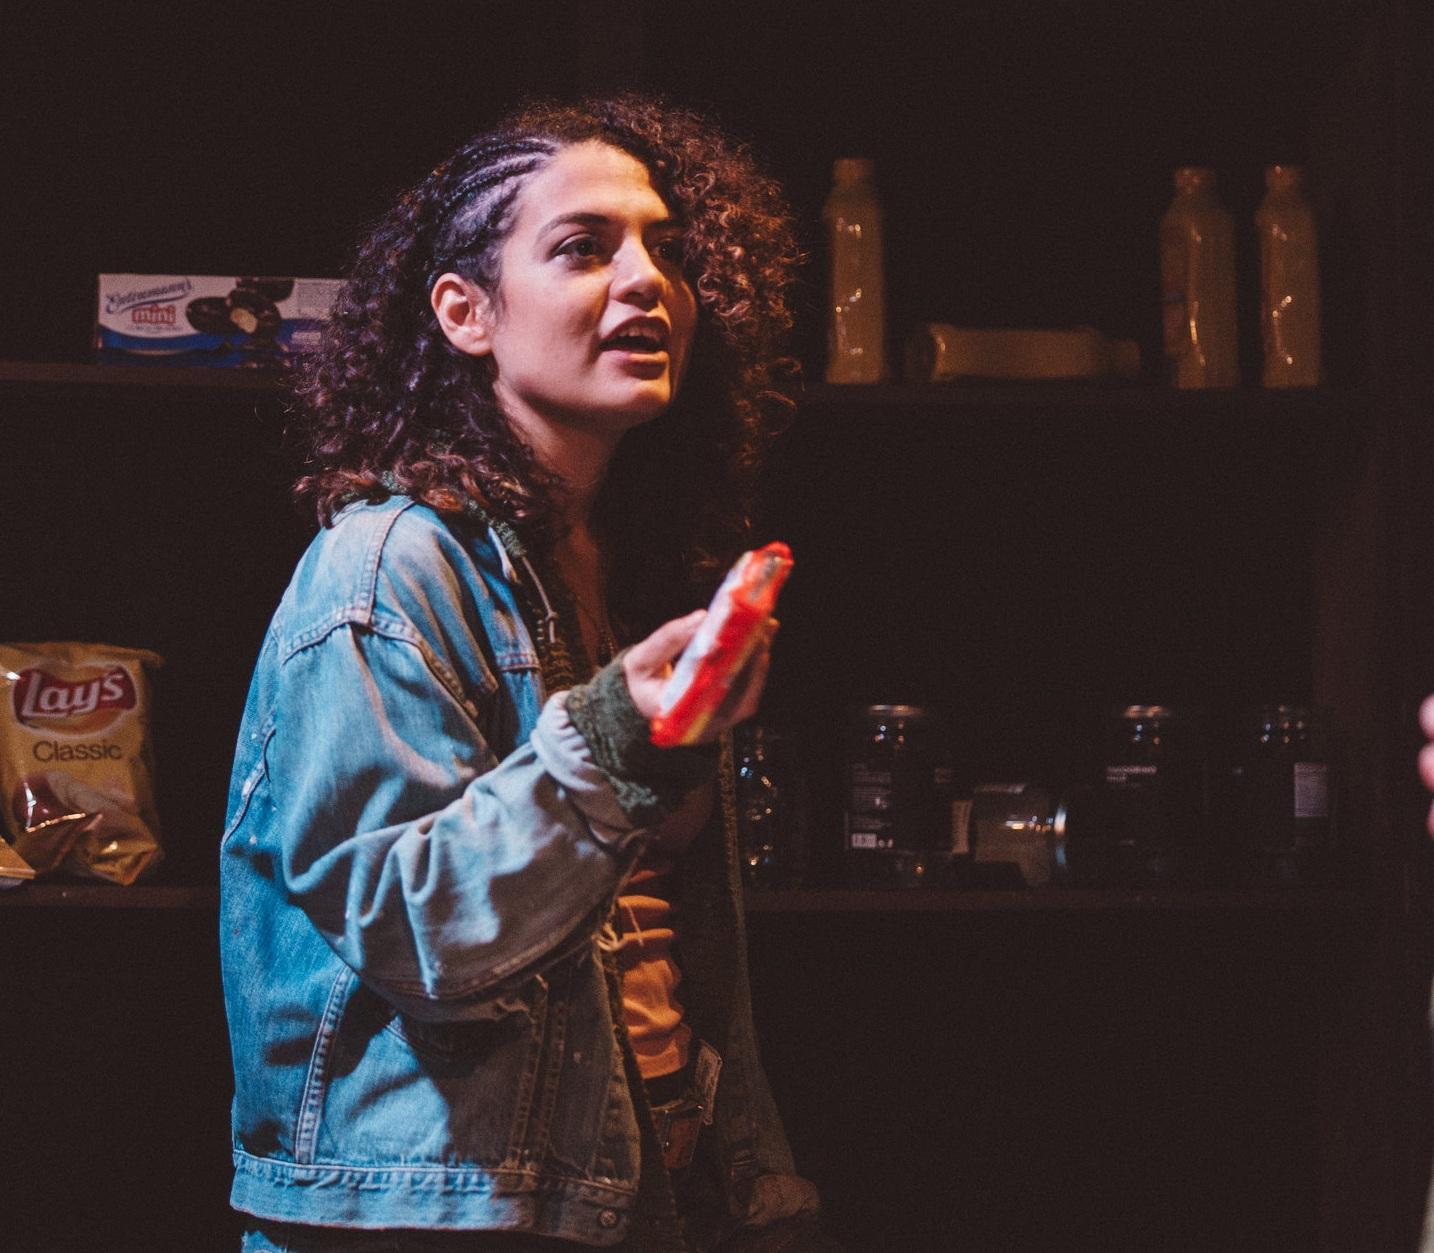 Box Collective Presents - Hurricane Sleep at IATI THEATRE / Character - Ome/ Photo Credit - Quincy Ledbetter